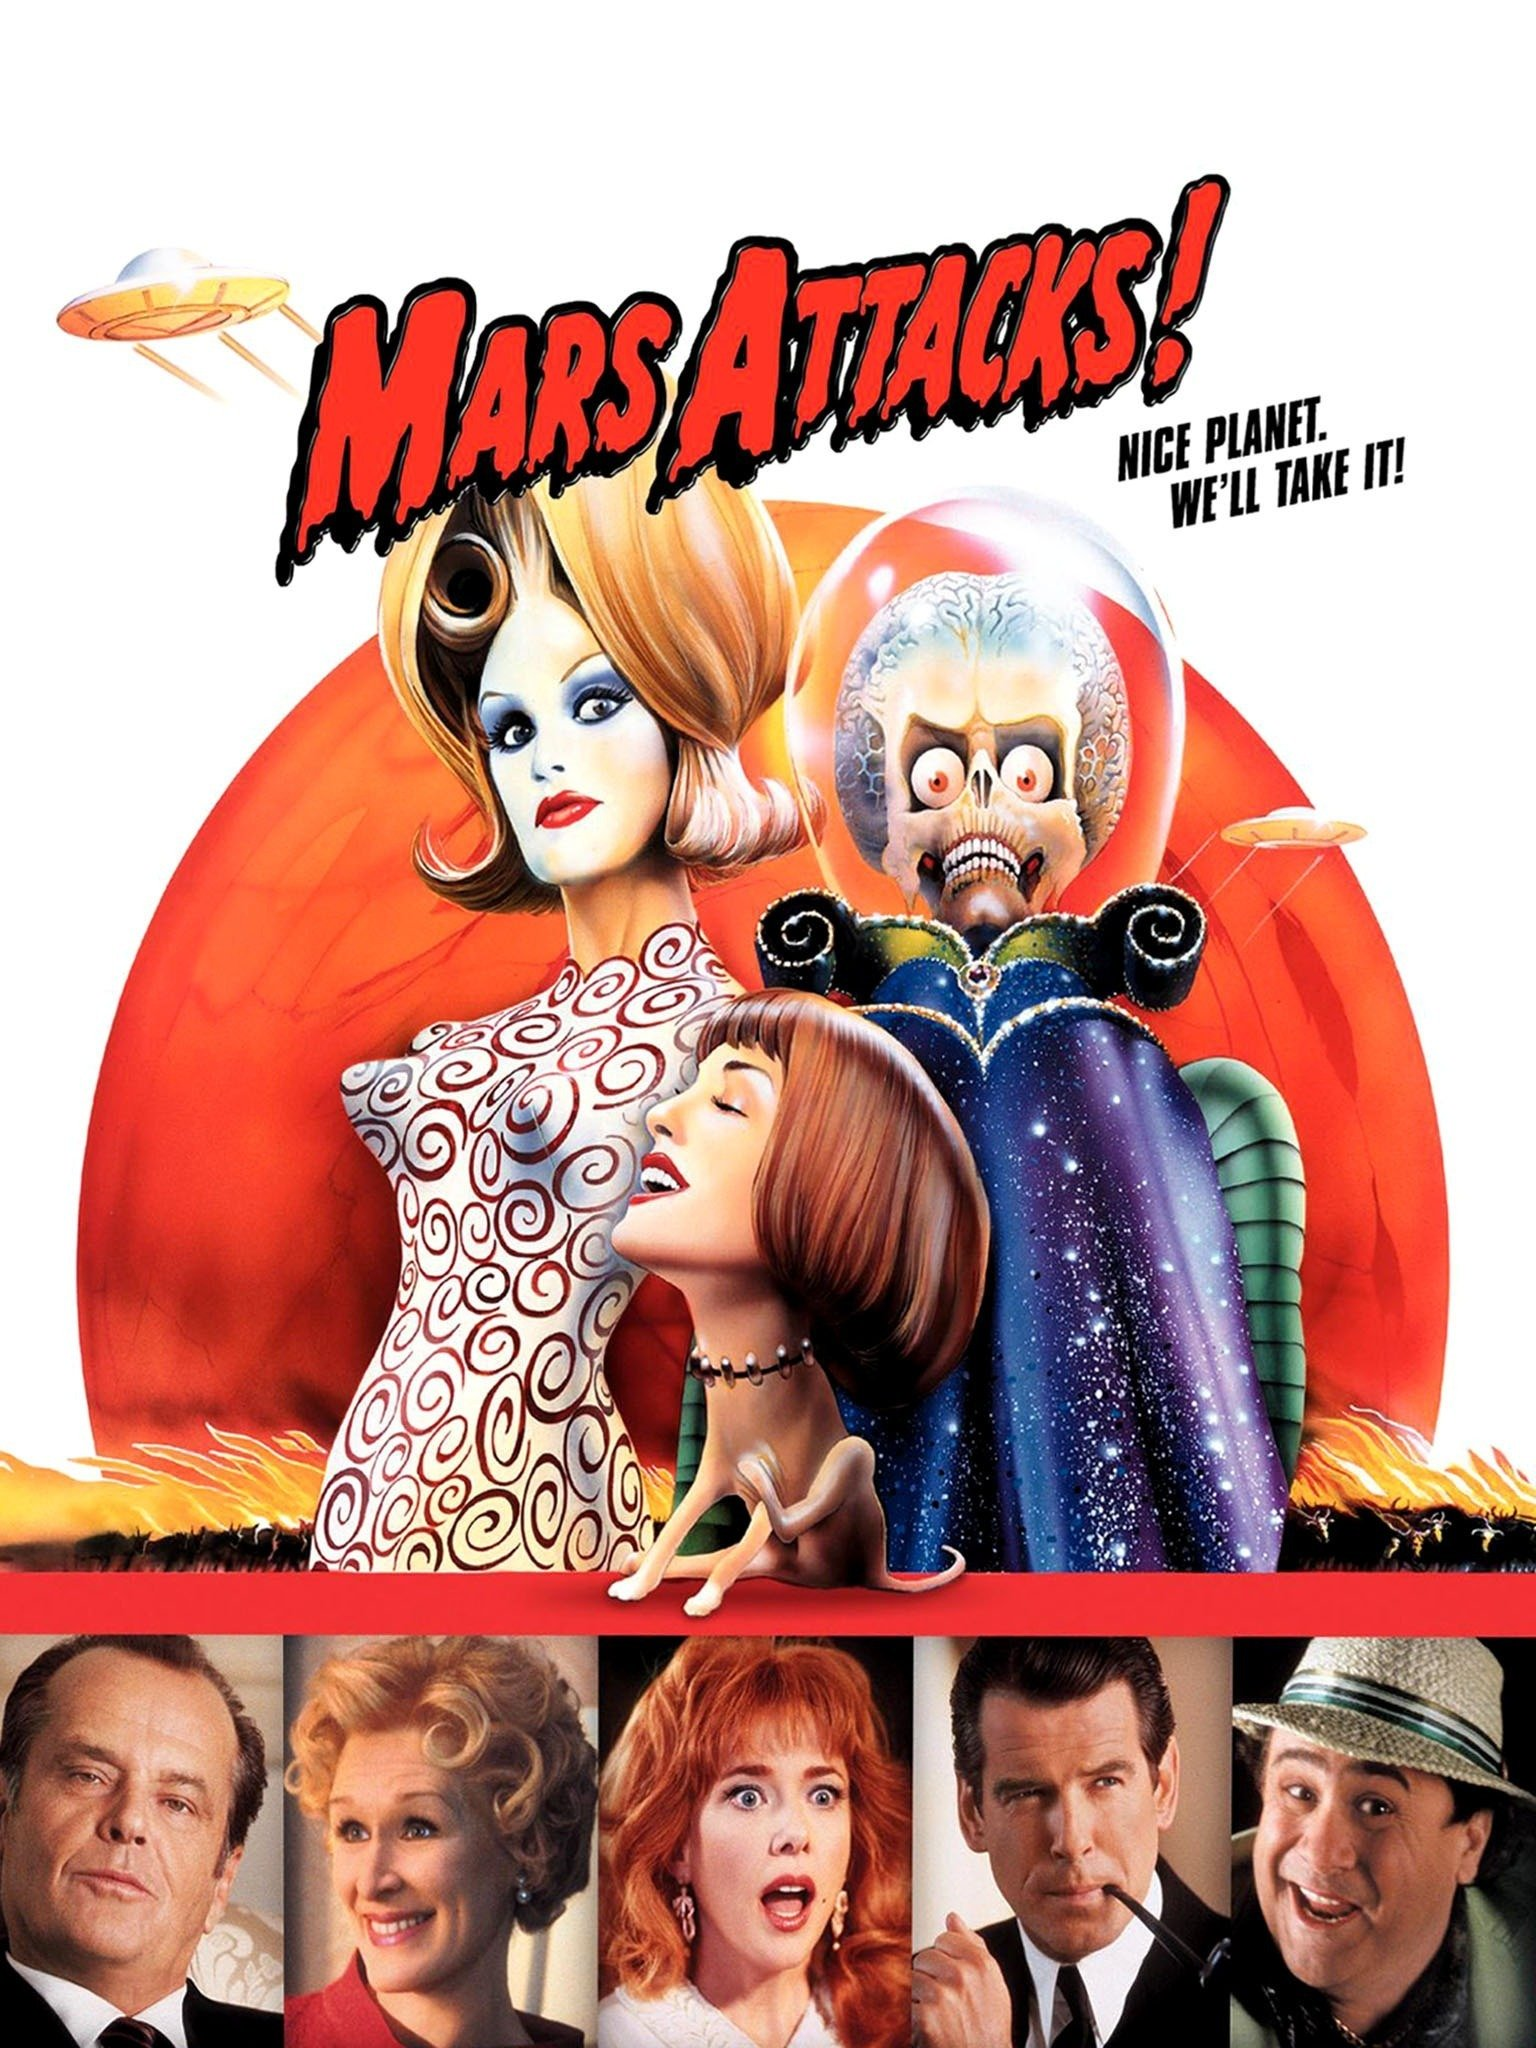 16 90s Sci-FI Movies That Were Mostly Forgettable But Are Still Loved By Many Mars Attacks! (1996) - Rotten Tomatoes